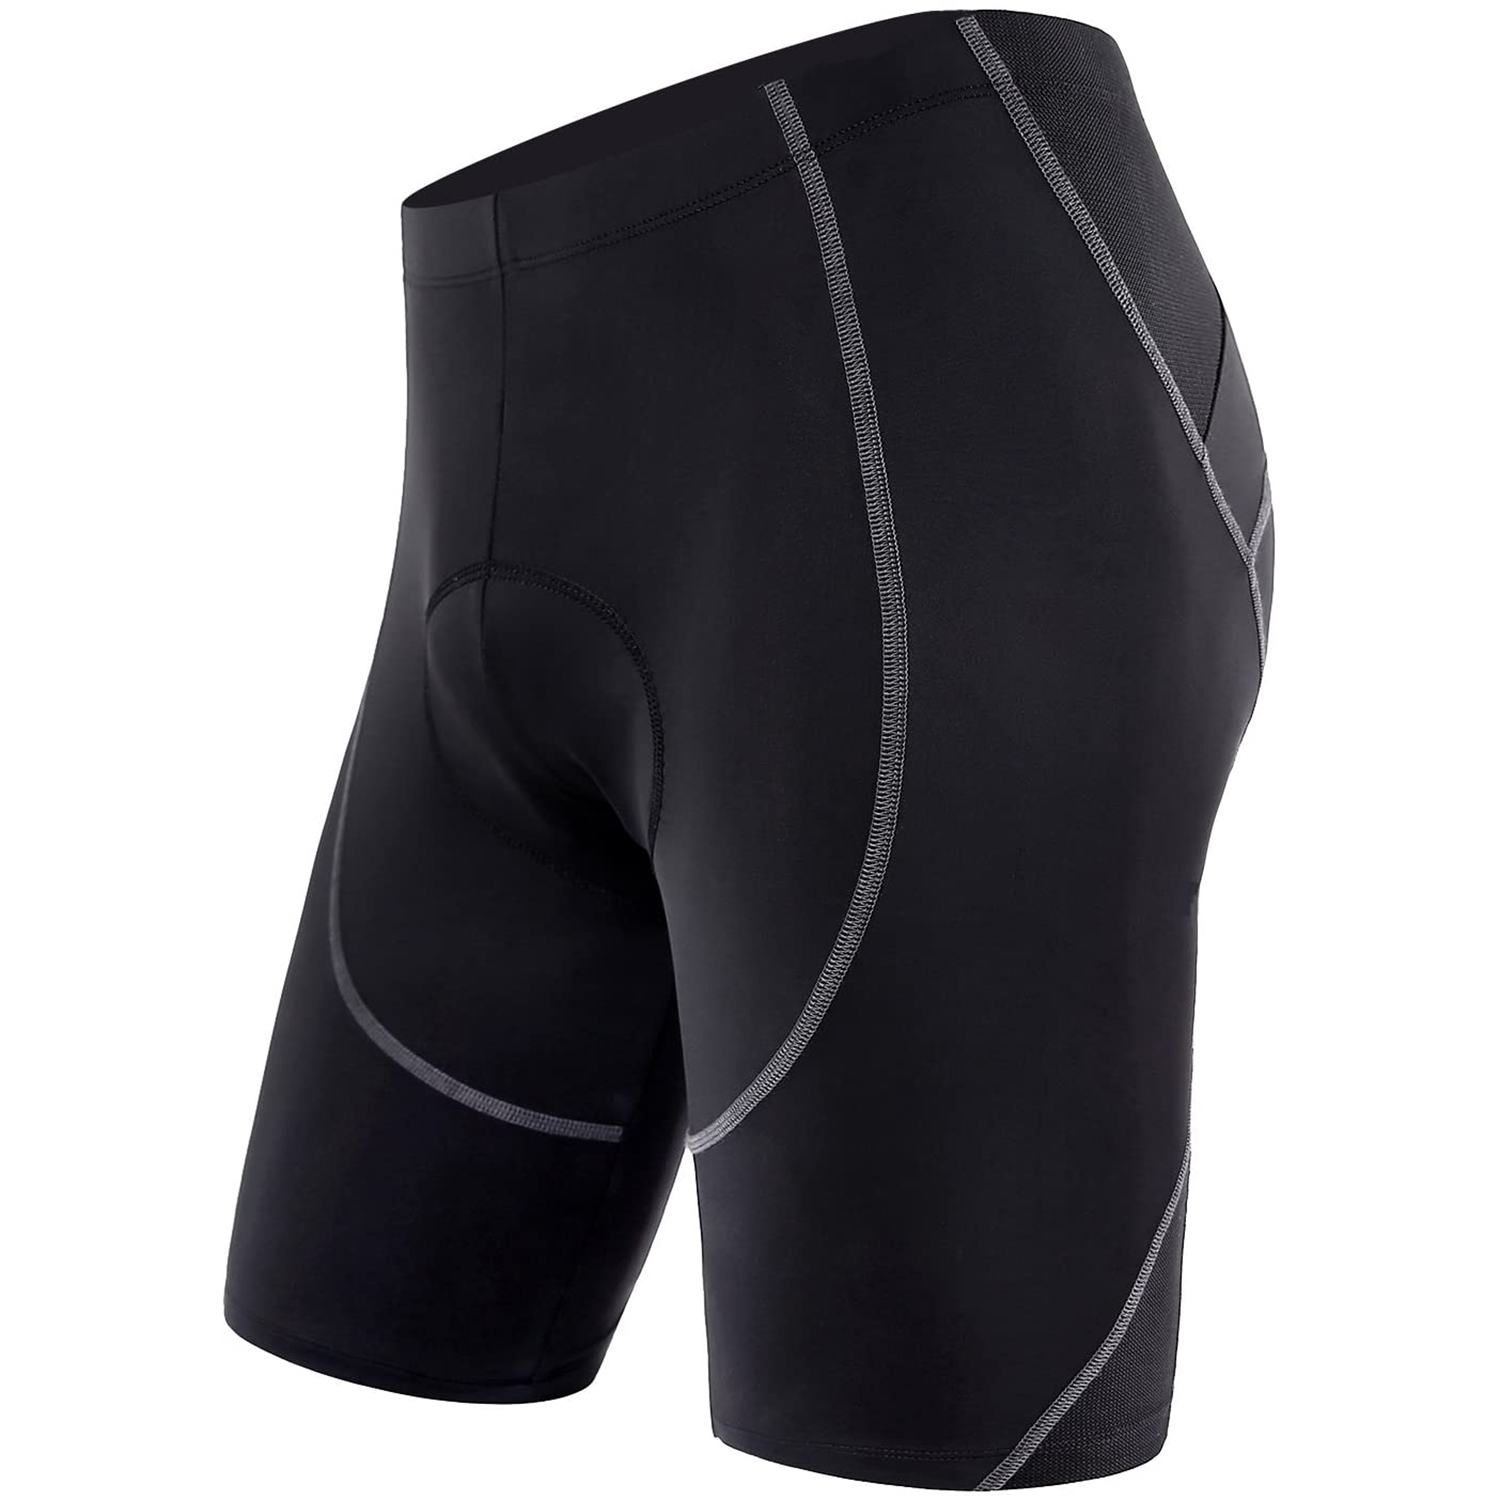 Padded Bicycle Underwear Shorts